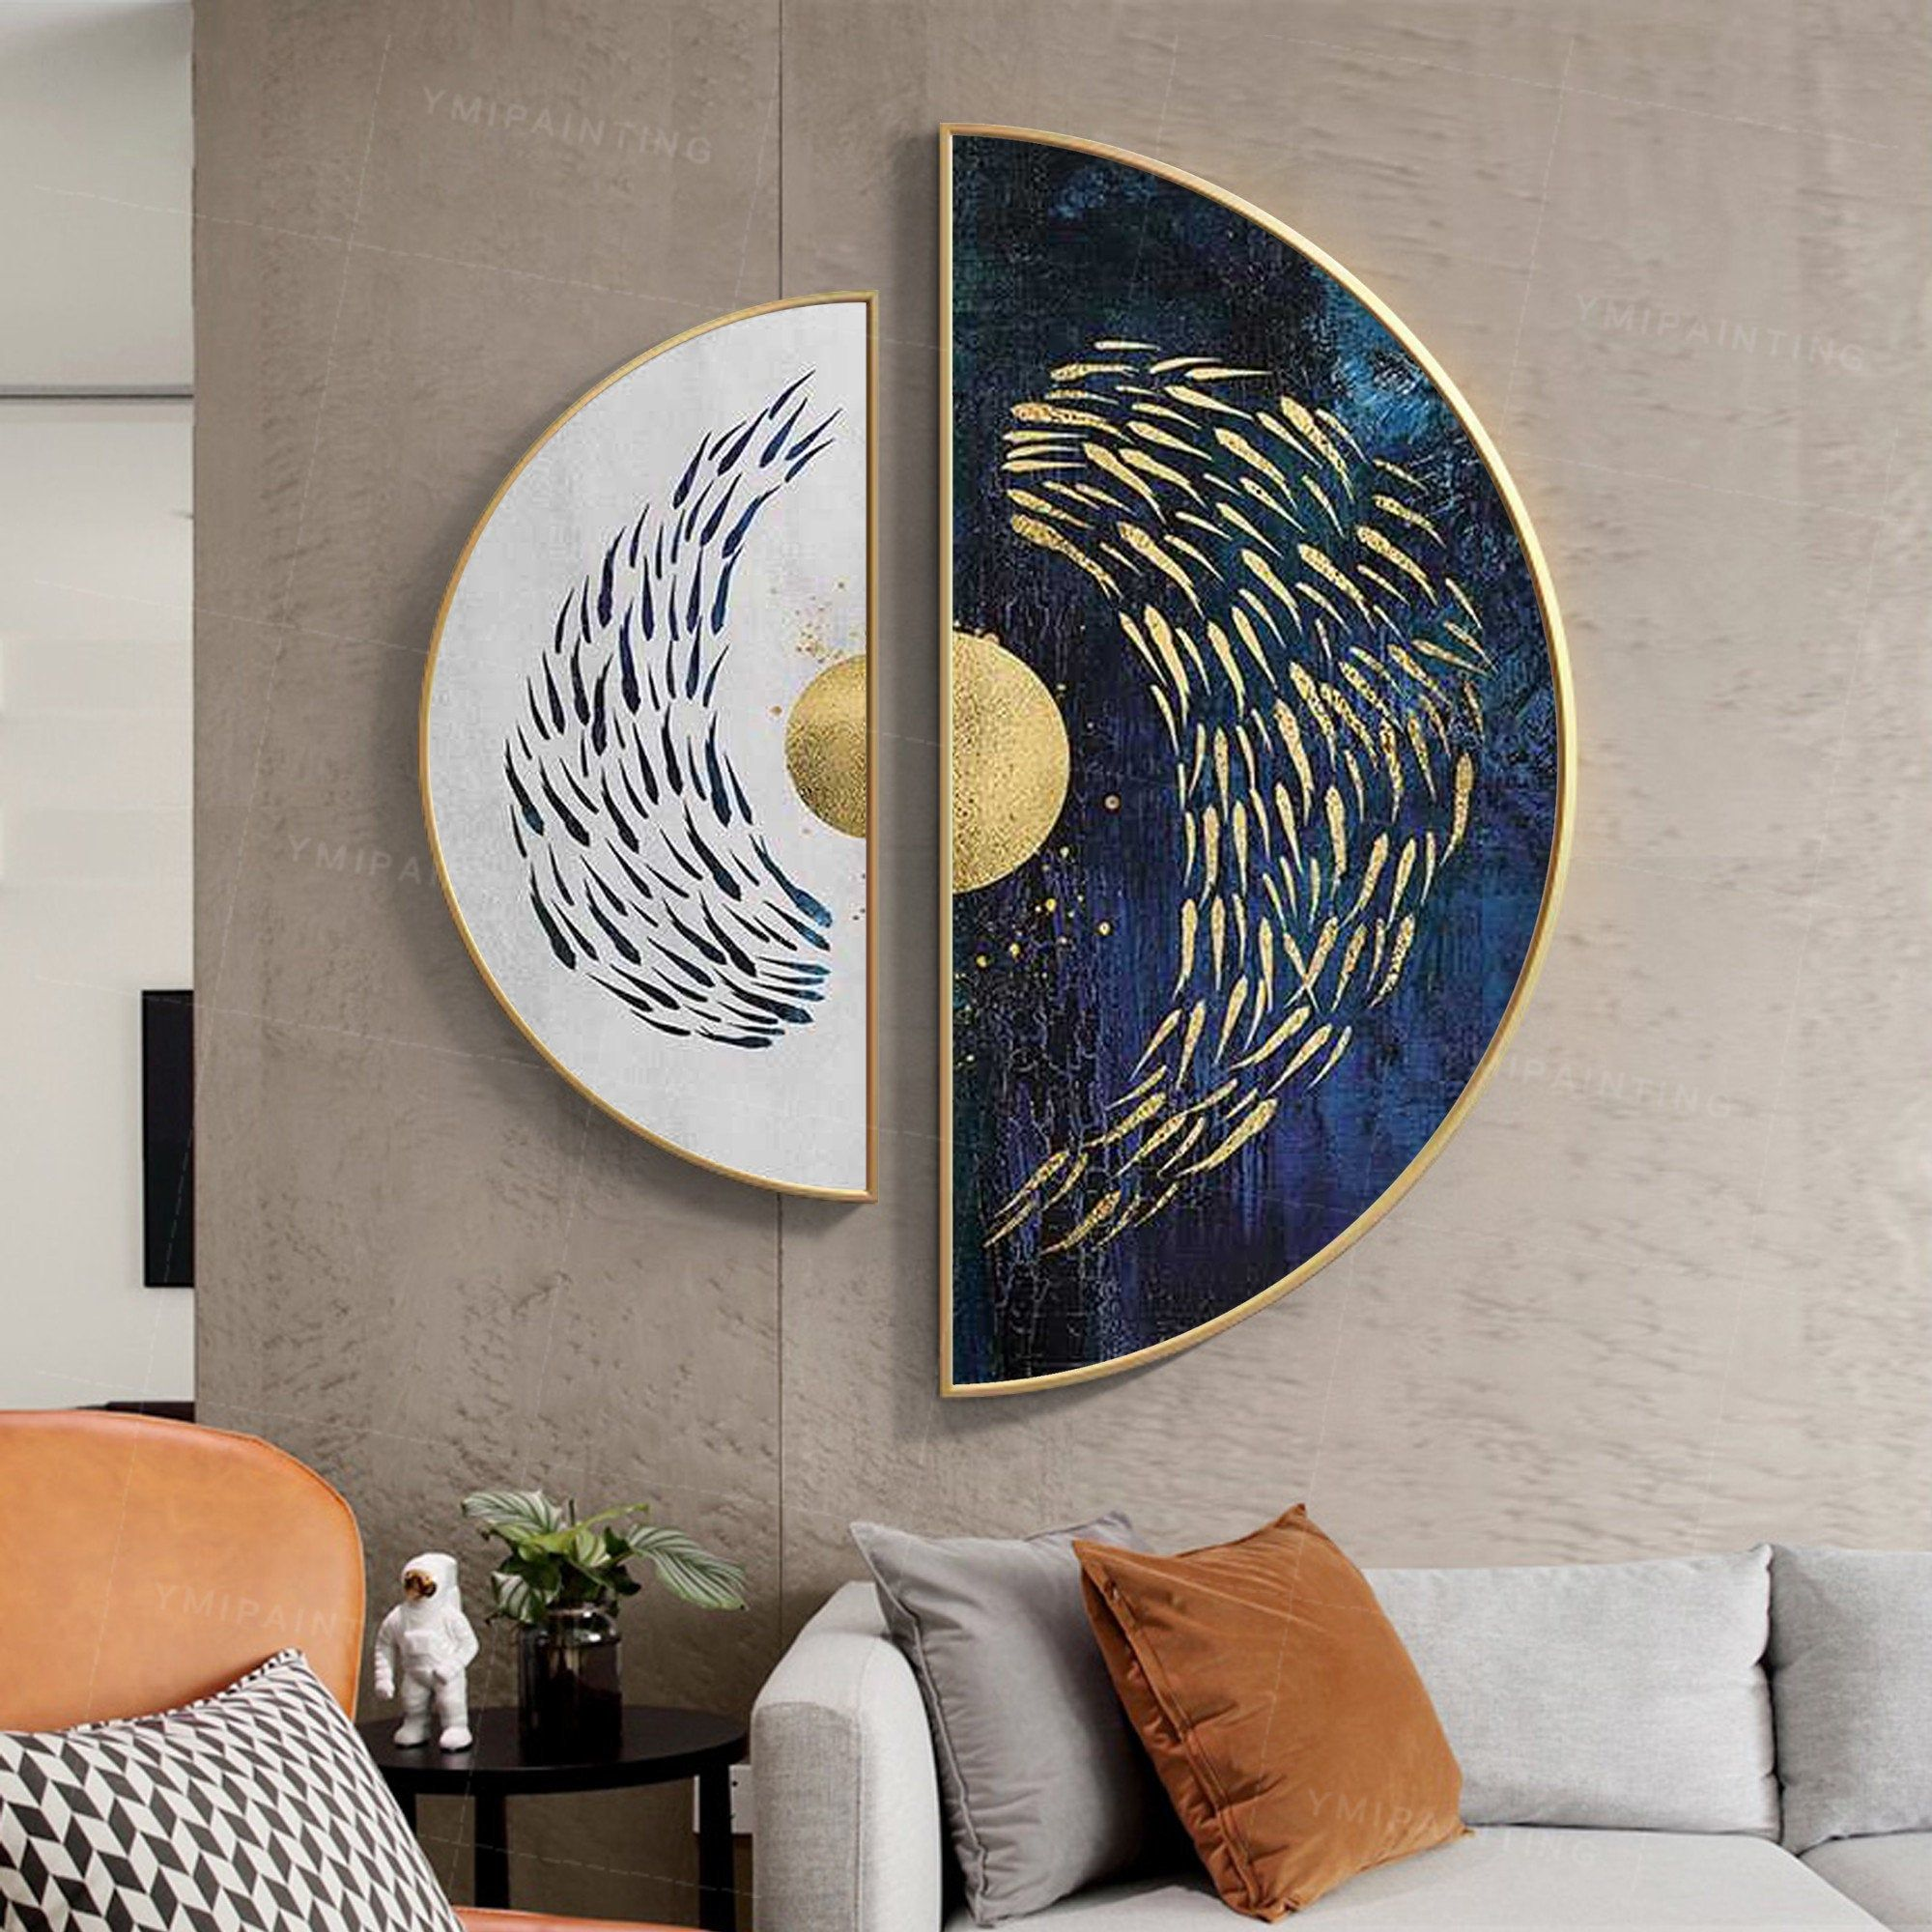 Framed Wall Art Gold Art Set Of 2 Wall Art Sea Navy Blue Etsy Abstract Wall Art Living Room Contemporary Wall Art Wall Art Living Room